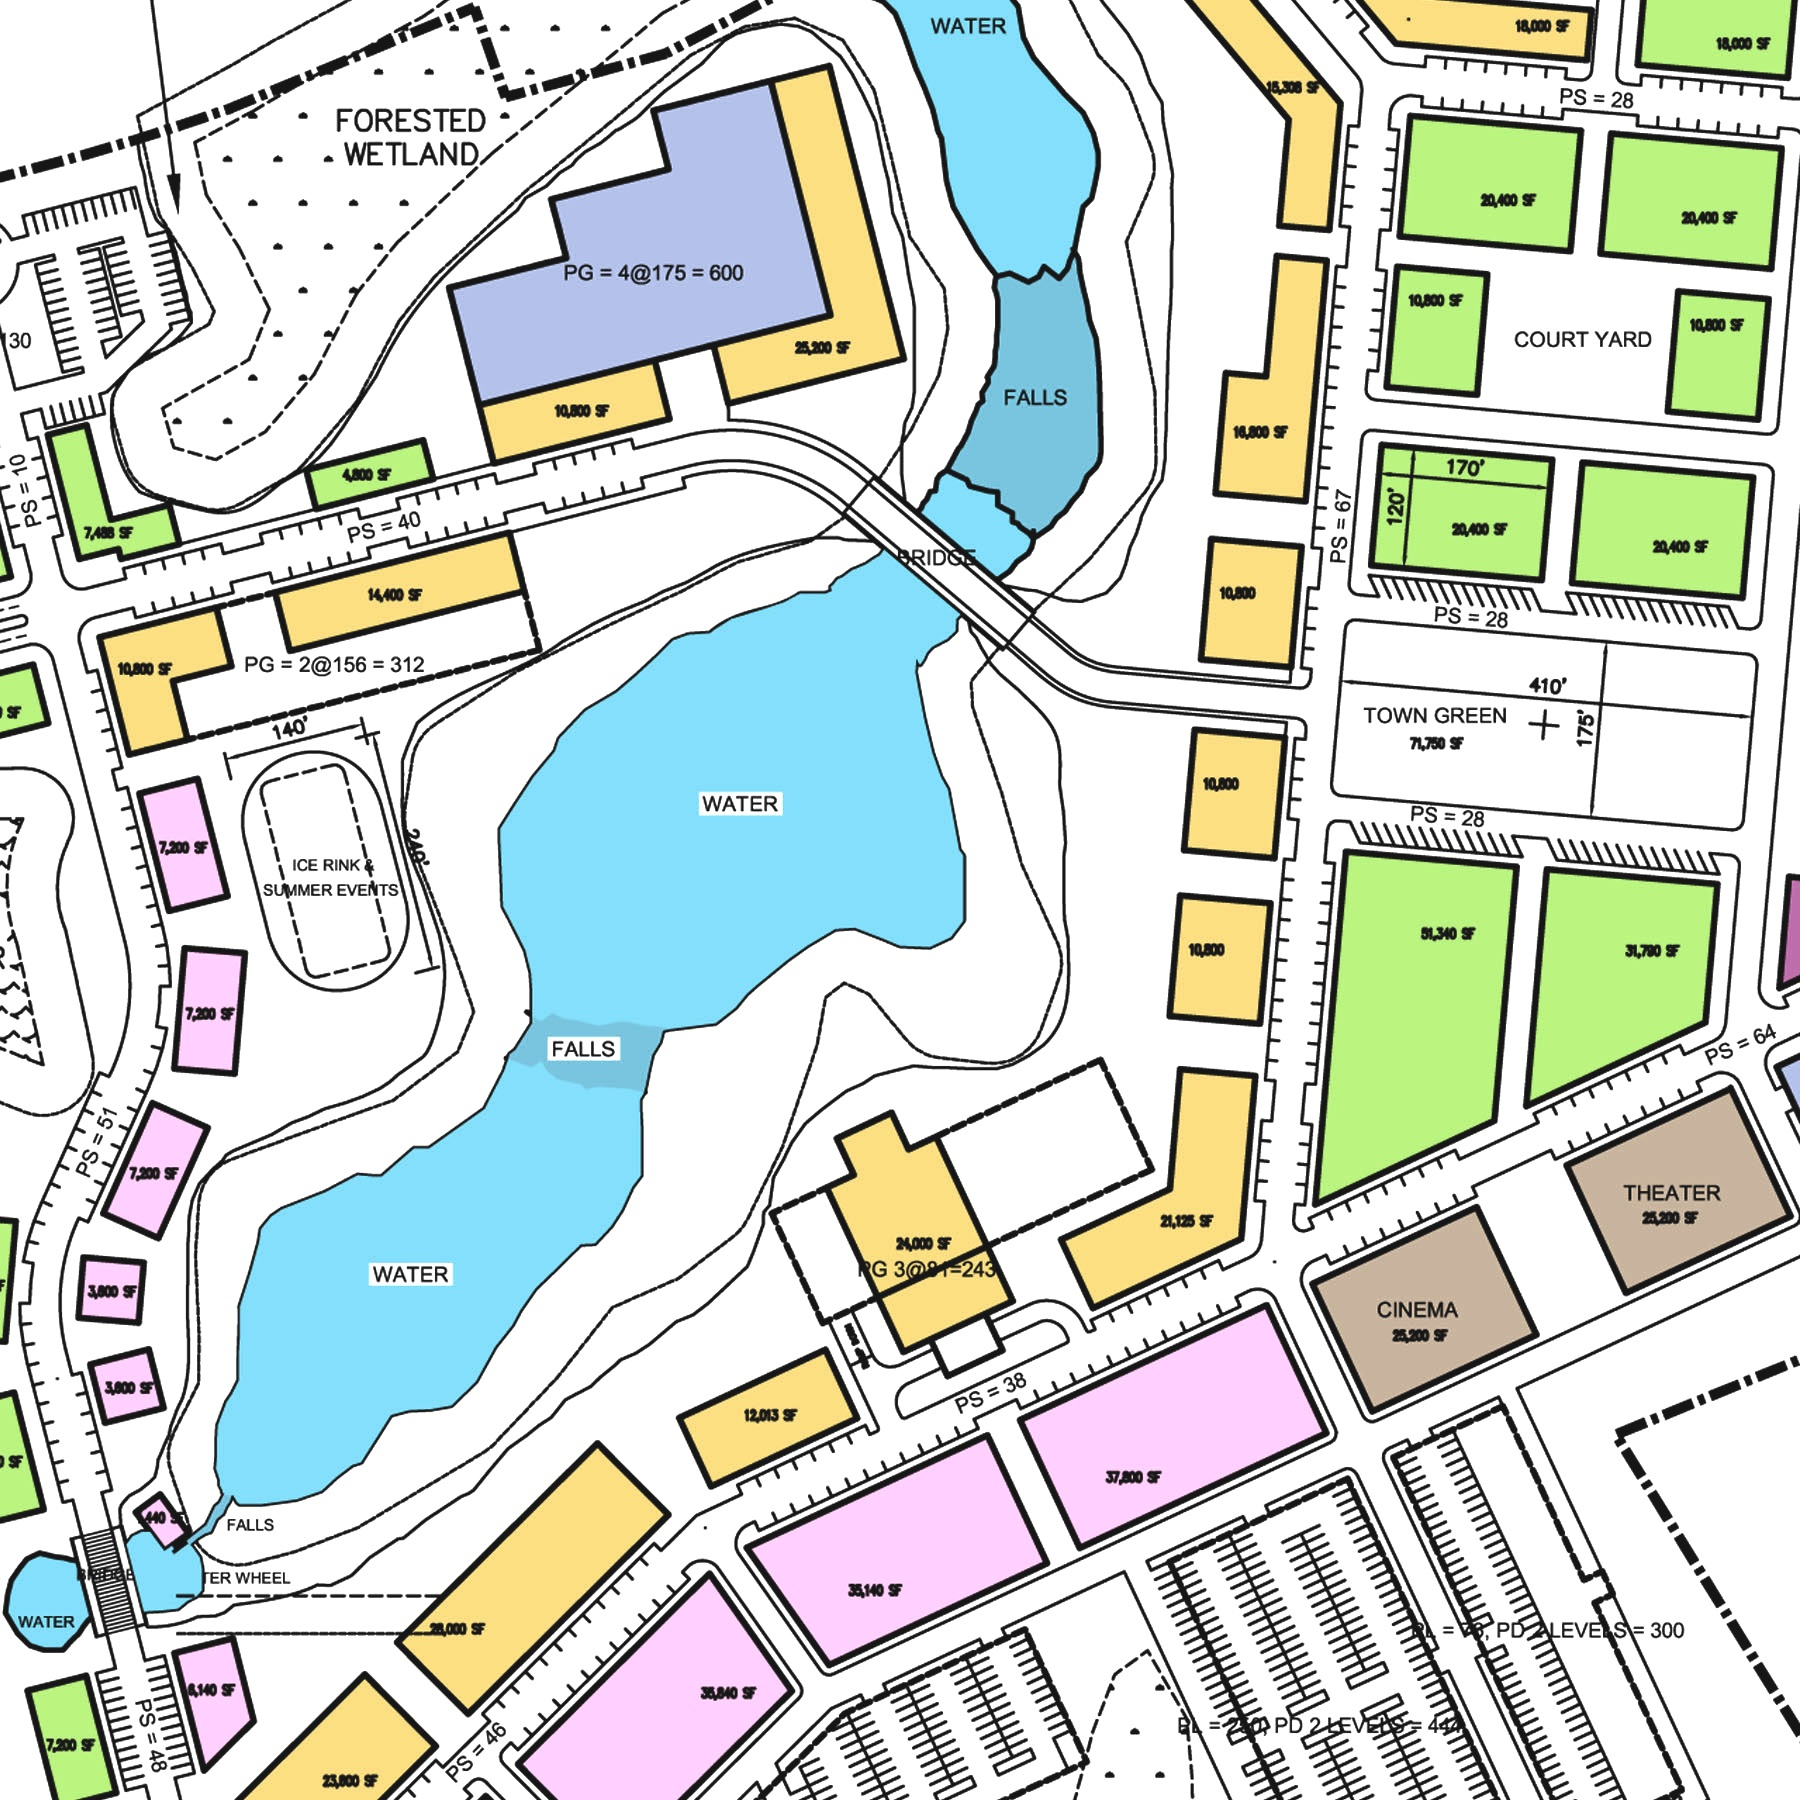 MASTER PLANNING   We often provide our clients looking to expand or relocate with feasibility studies investigating potential sites including:   - Site Surveys  - Zoning Analysis  - Master Planning  - Cost-Benefit Analysis